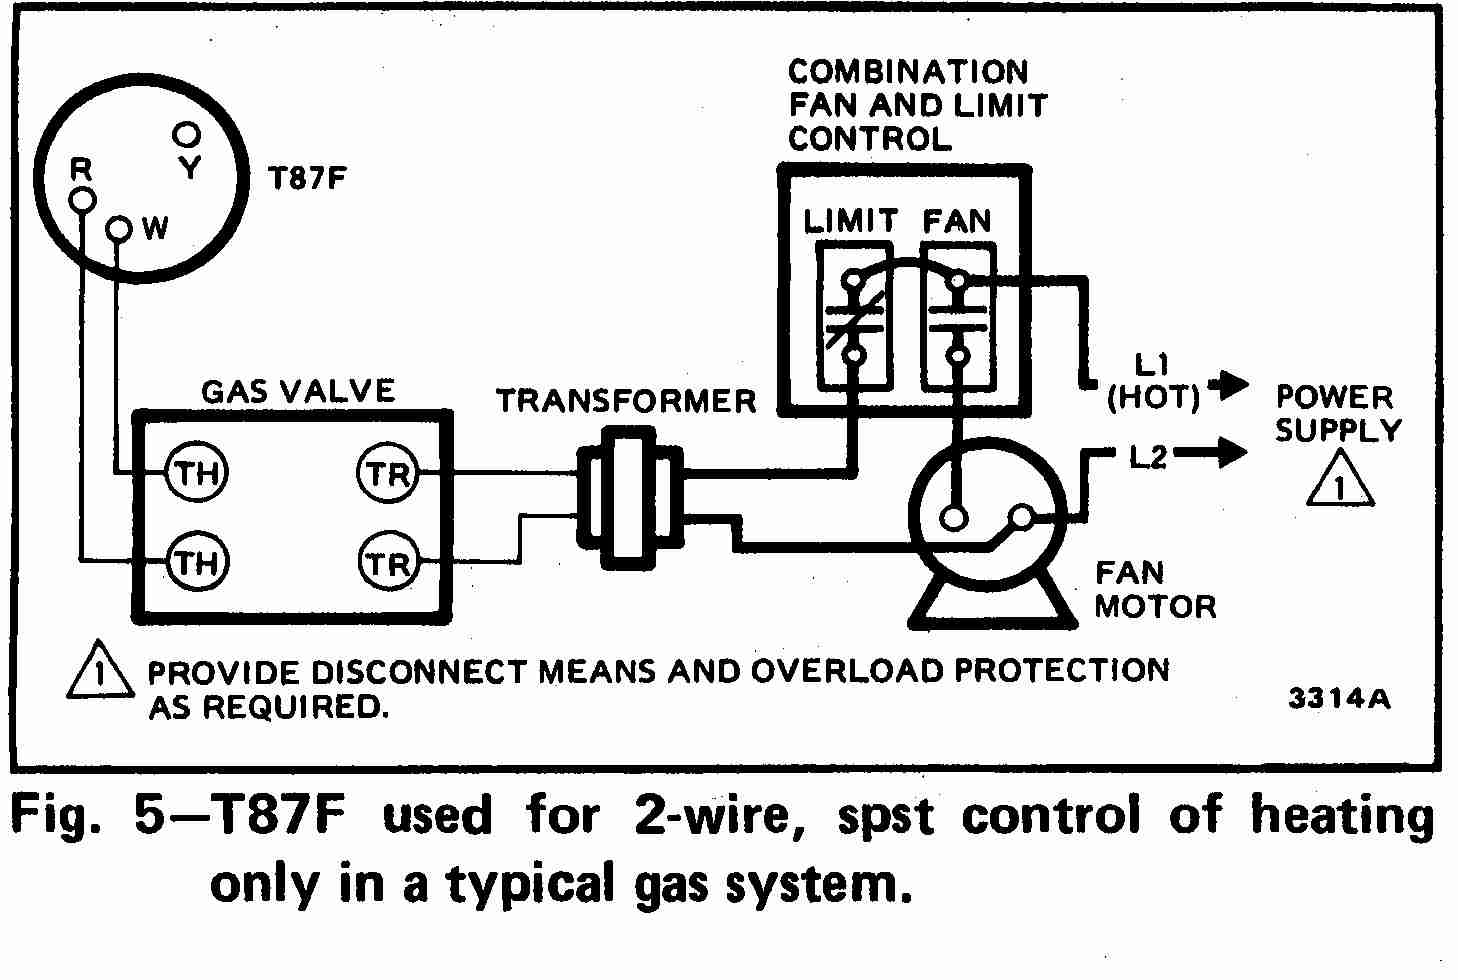 TT_T87F_0002_2Wg_DJF room thermostat wiring diagrams for hvac systems janitrol furnace wiring diagram at soozxer.org